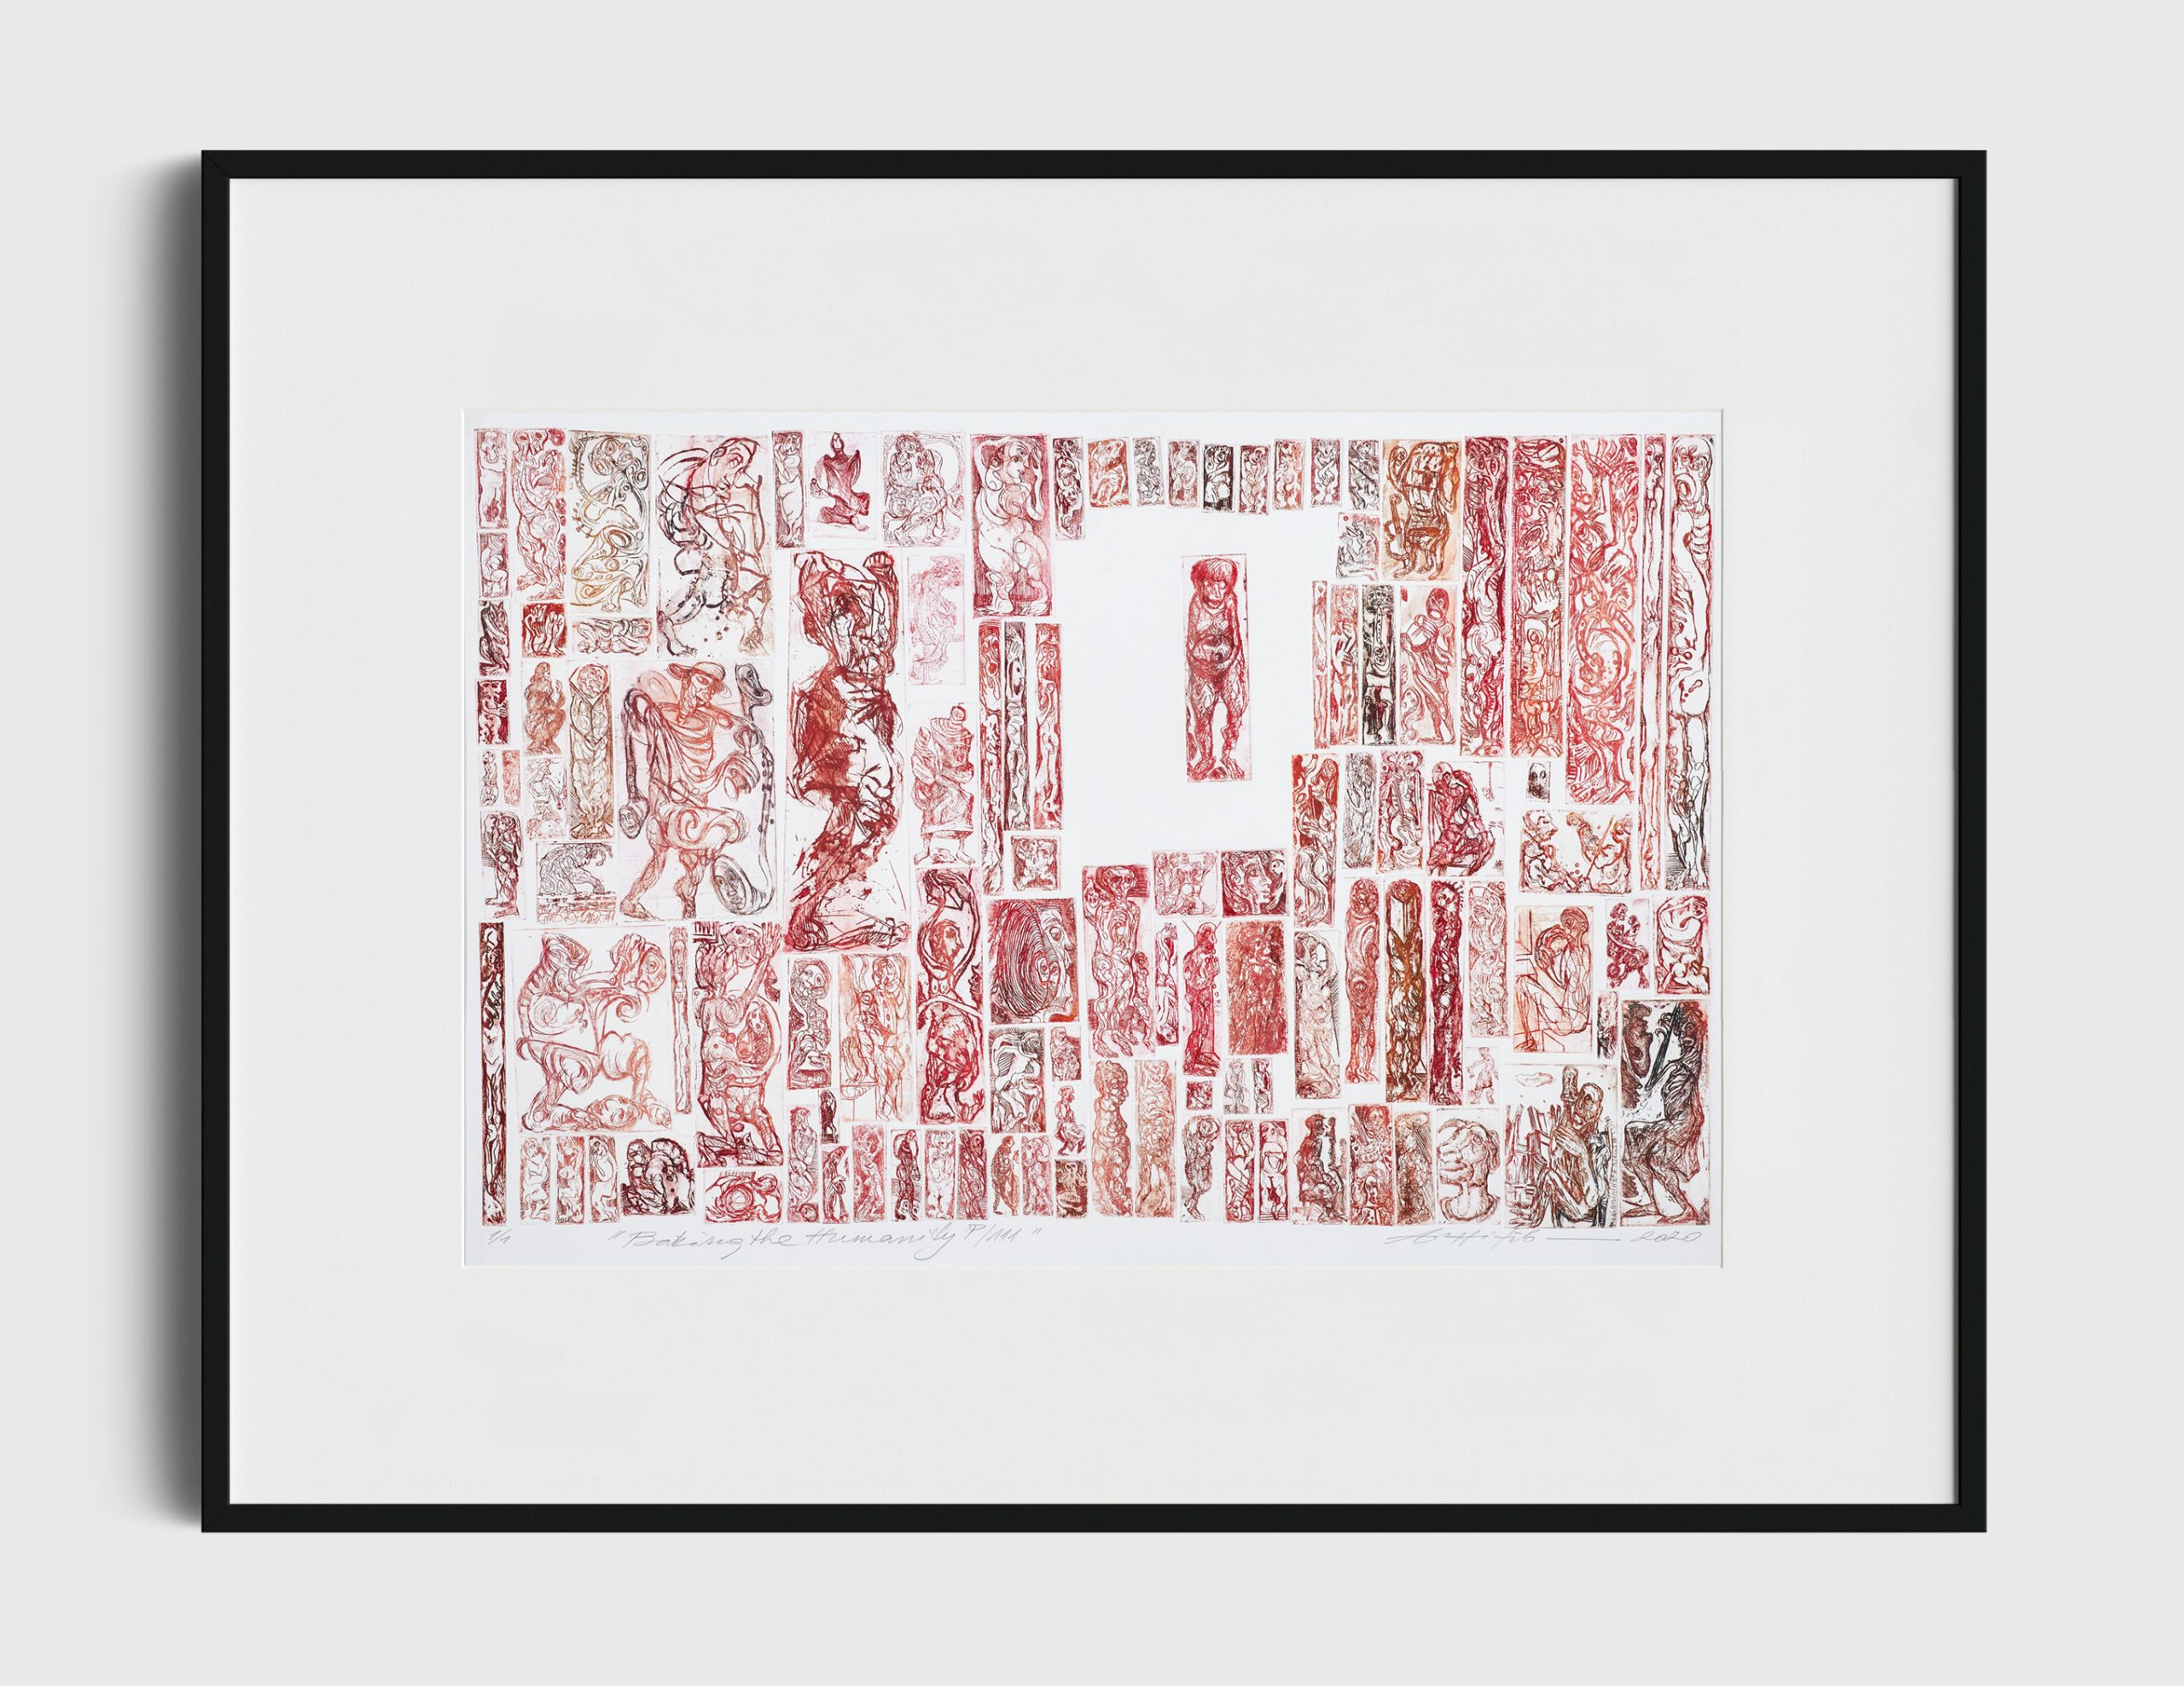 """""""P/ 111, Baking the Humanity"""" 1/1, multiplateetching, 40x60 cm, 2000"""